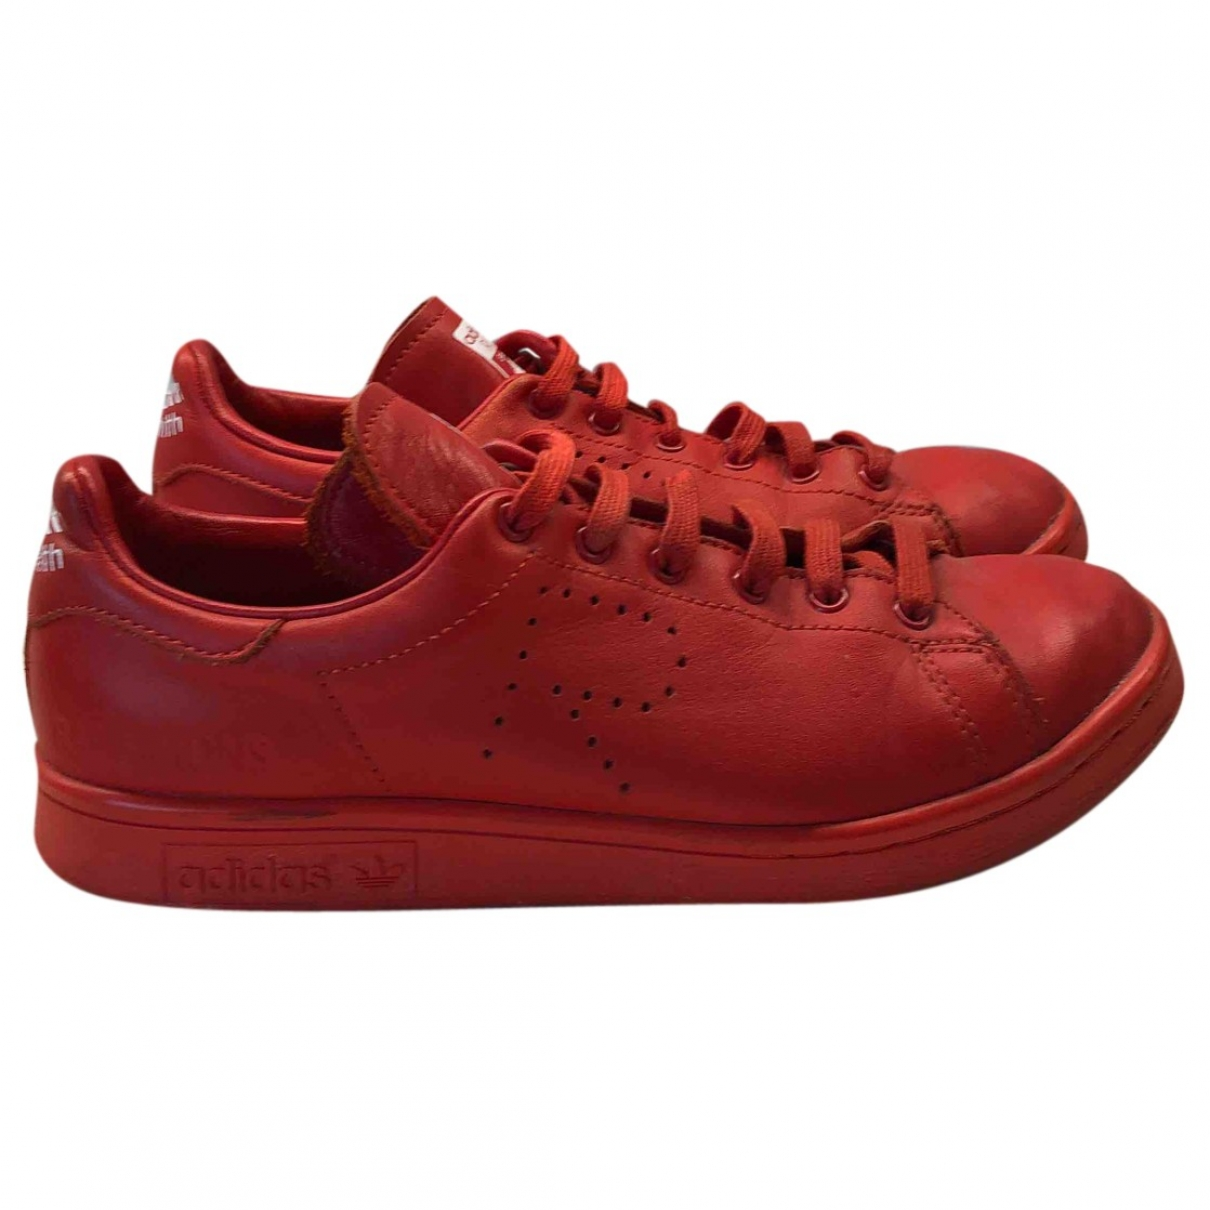 Adidas X Raf Simons Stan Smith Red Leather Trainers for Women 36.5 EU